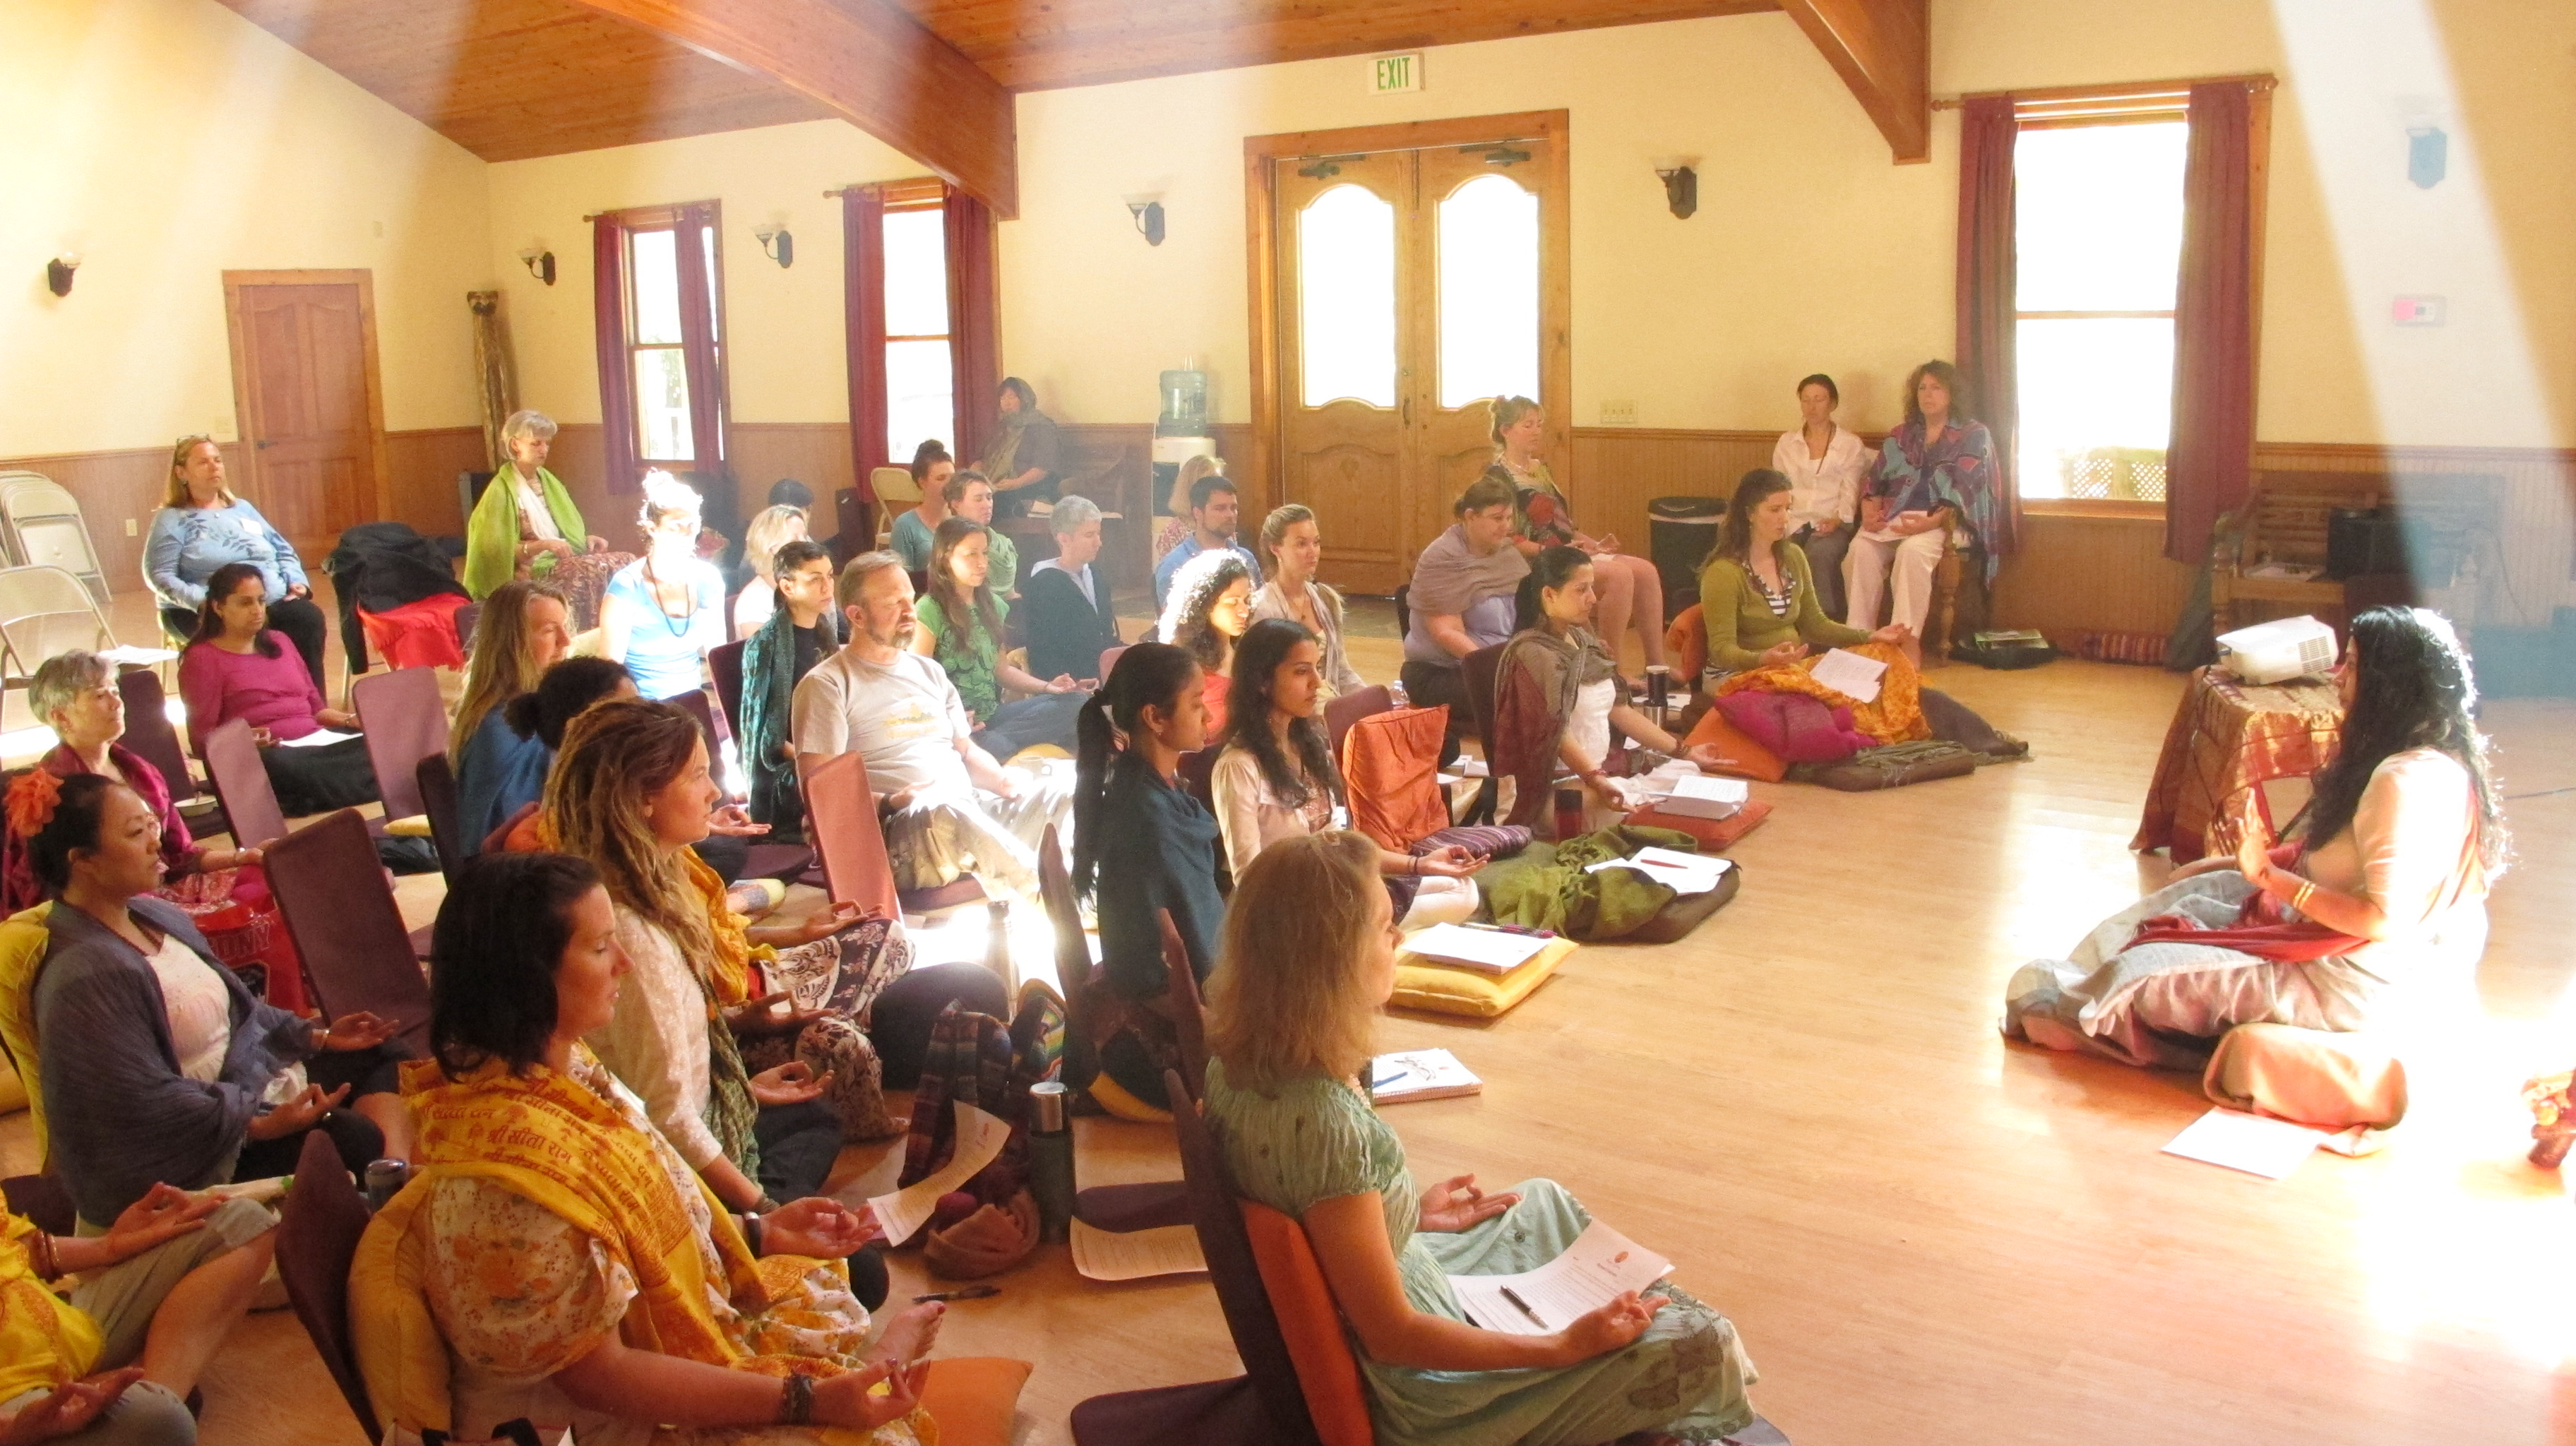 Acharya Shunya Teaching Meditation